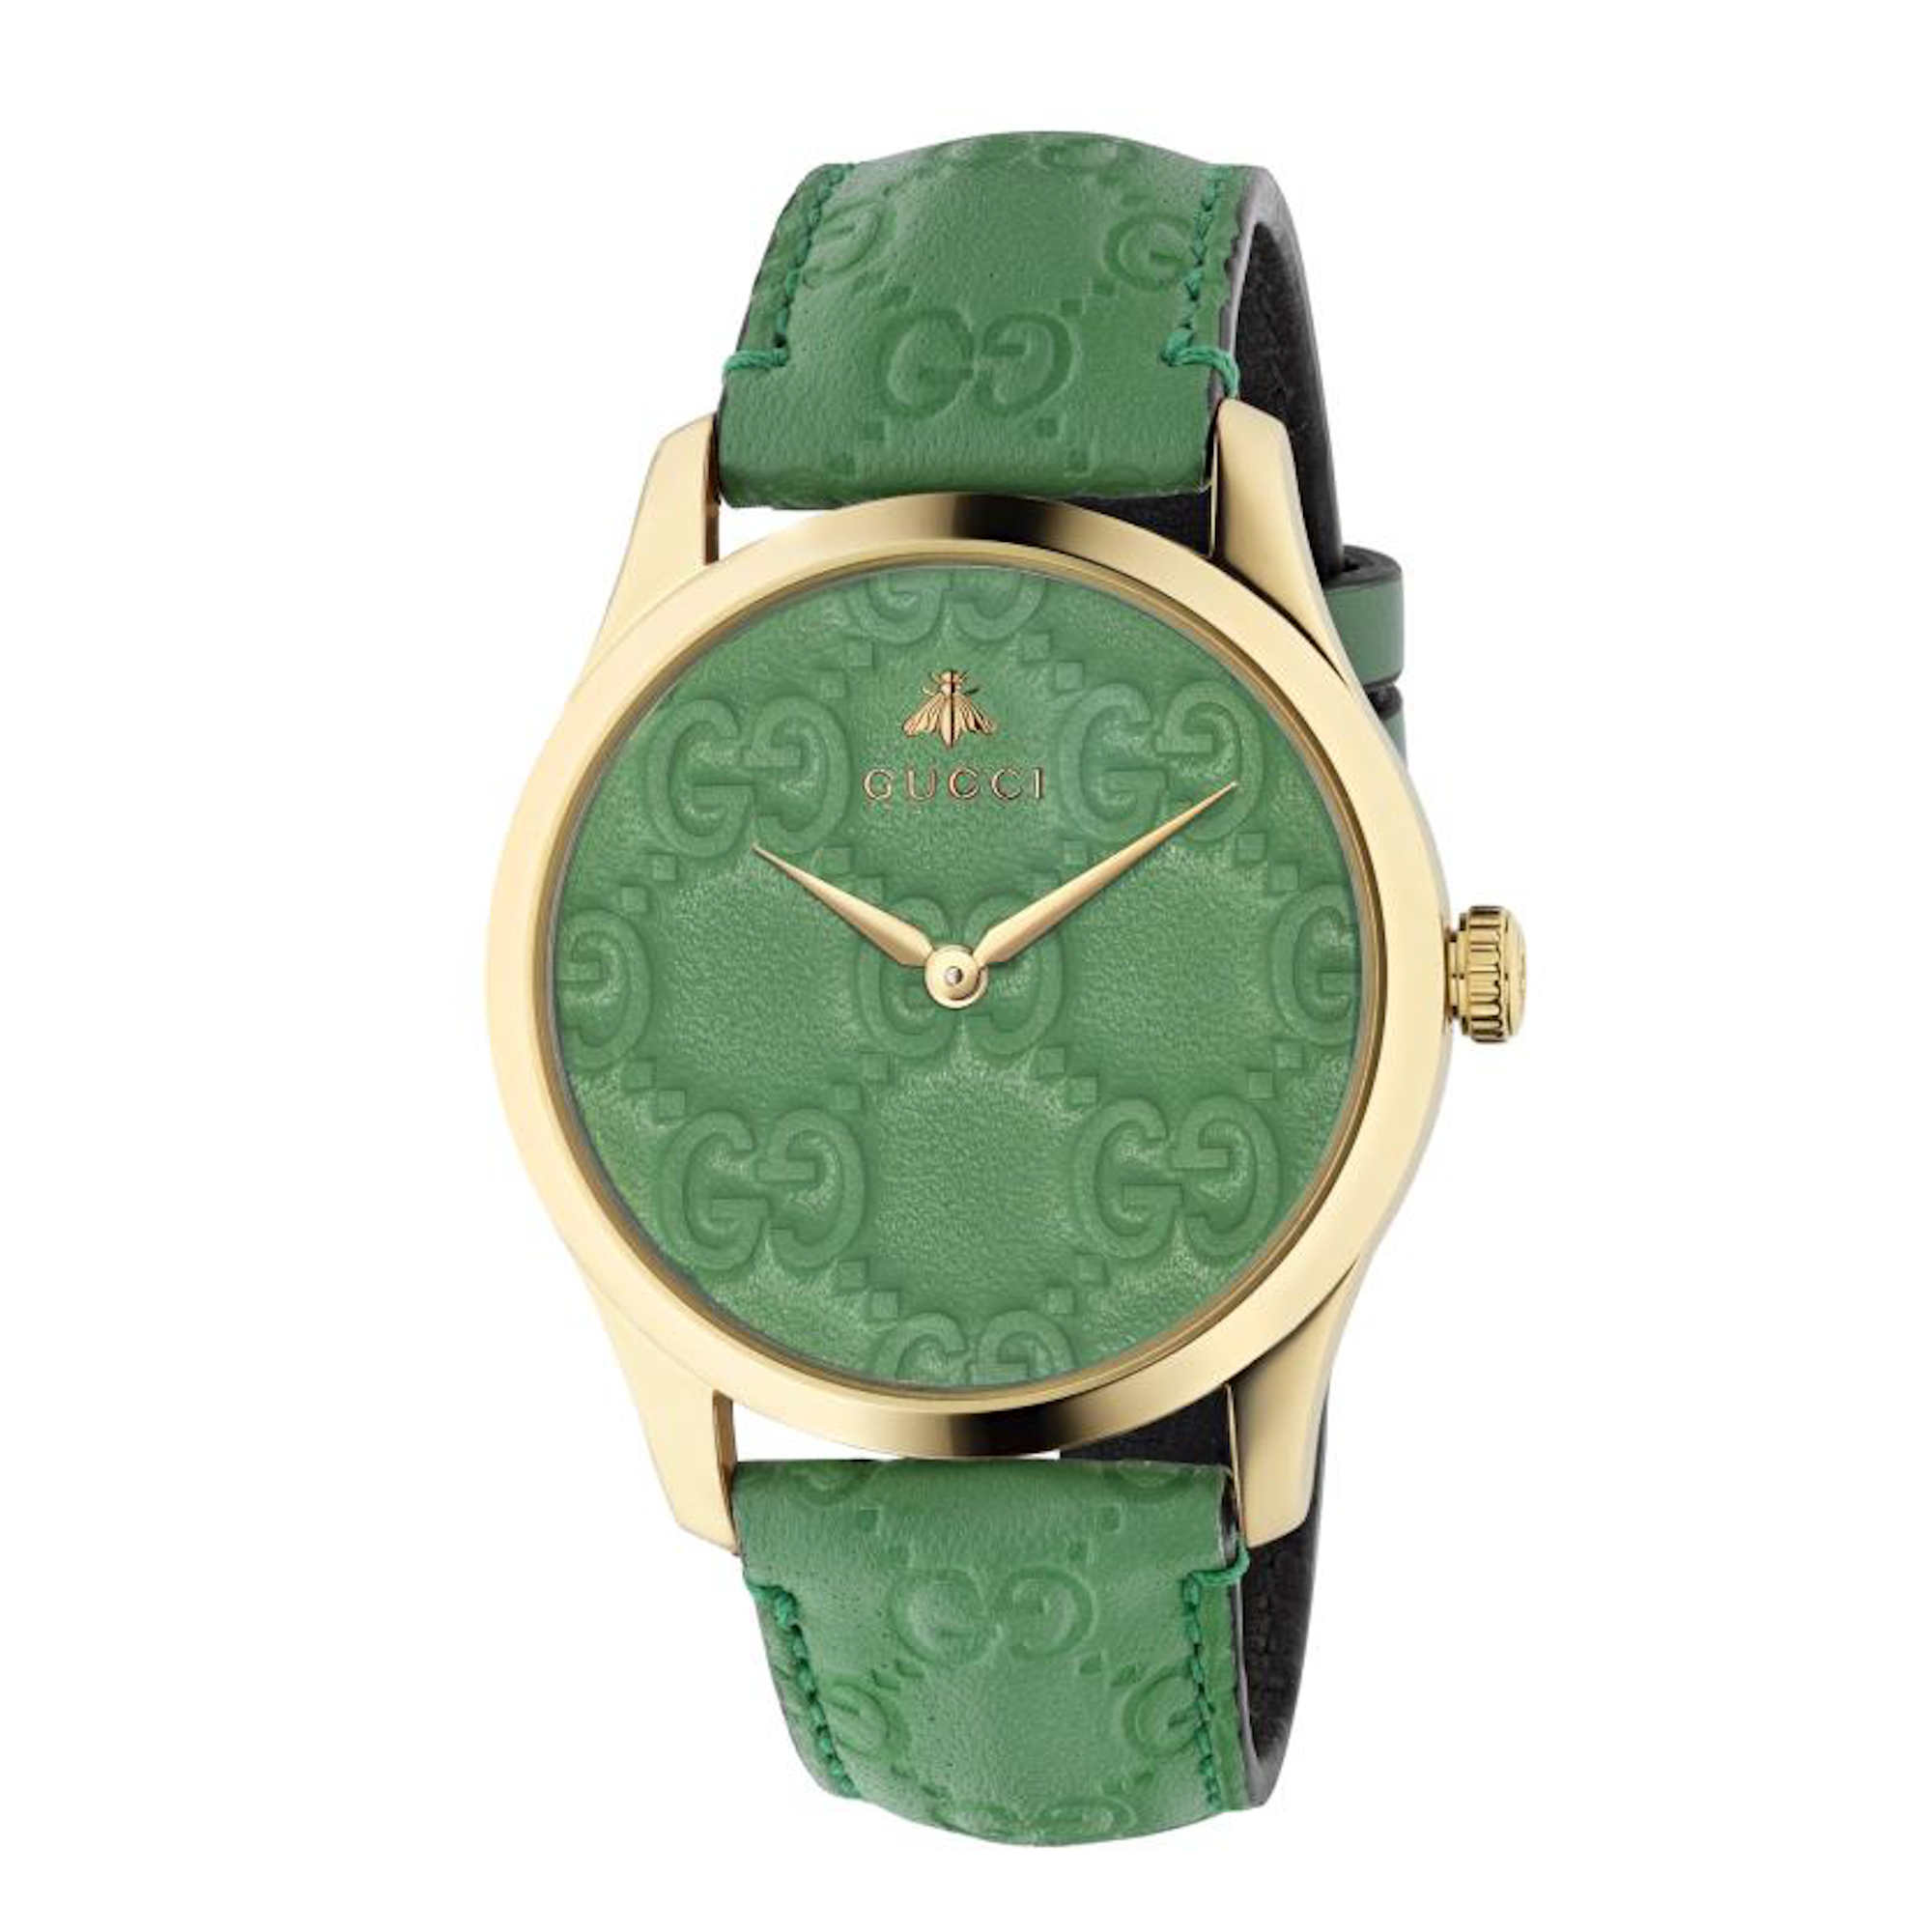 OROLOGIO GUCCI G -TIMELESS SIGNATURE watch